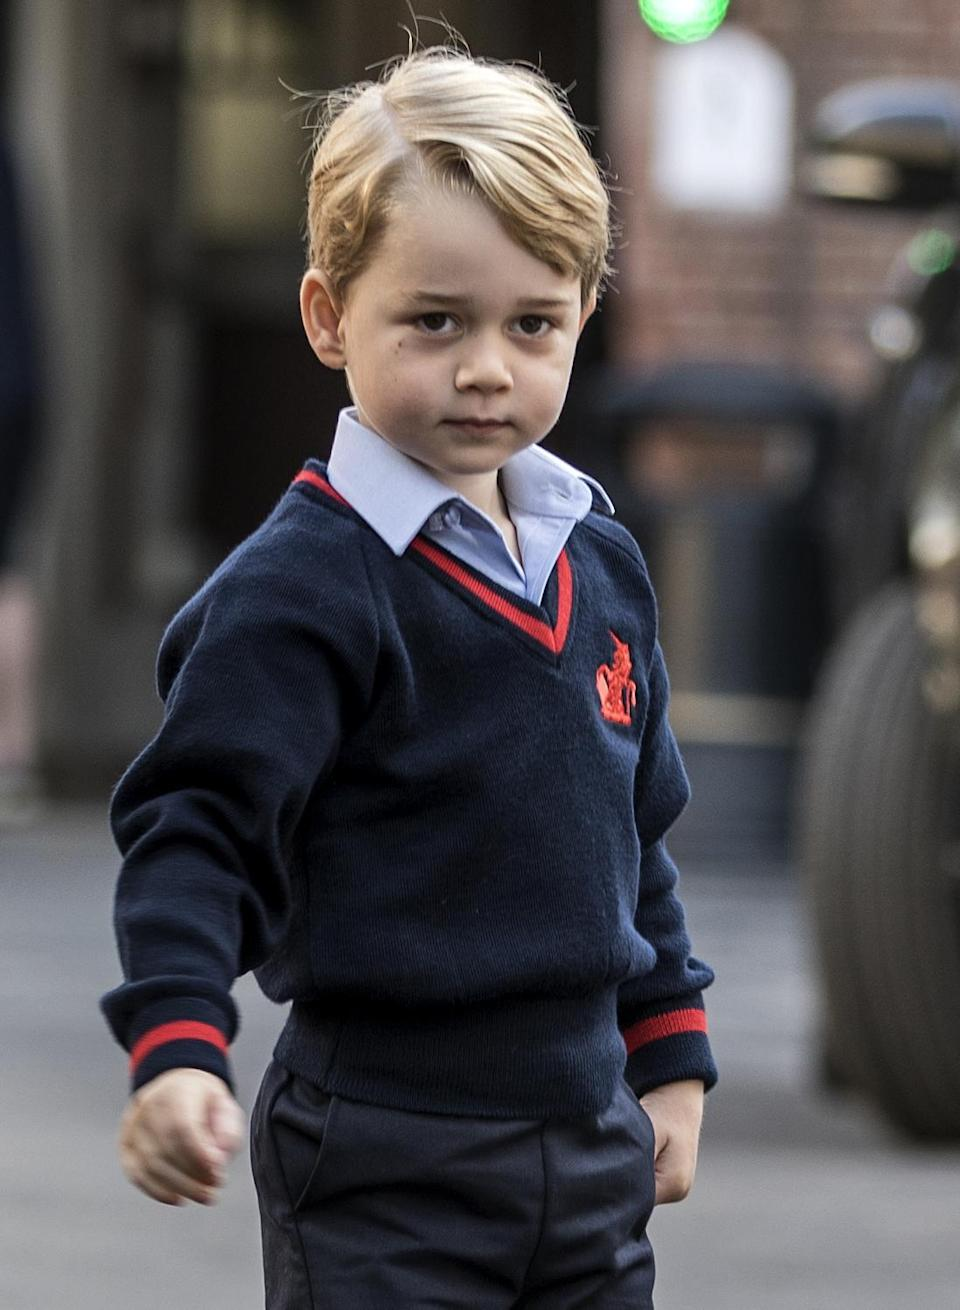 """<p>As an unofficial royal rule, senior members of the royal family have attended boarding schools with peers of the same sex, but rumour has it that Duchess of Cambridge and Prince William might break from royal tradition when it comes to Prince George and allow him to attend a co-ed school instead of single sex: """"The word on the street is that his parents want co-education and boarding when he leaves prep school,"""" a source told The Sunday Times.</p><p>So instead of following in dad William and uncle Harry's footsteps by attending Eton College independent boarding school for boys — George just might break an unofficial royal rule attending a mixed-sex boarding school.</p>"""